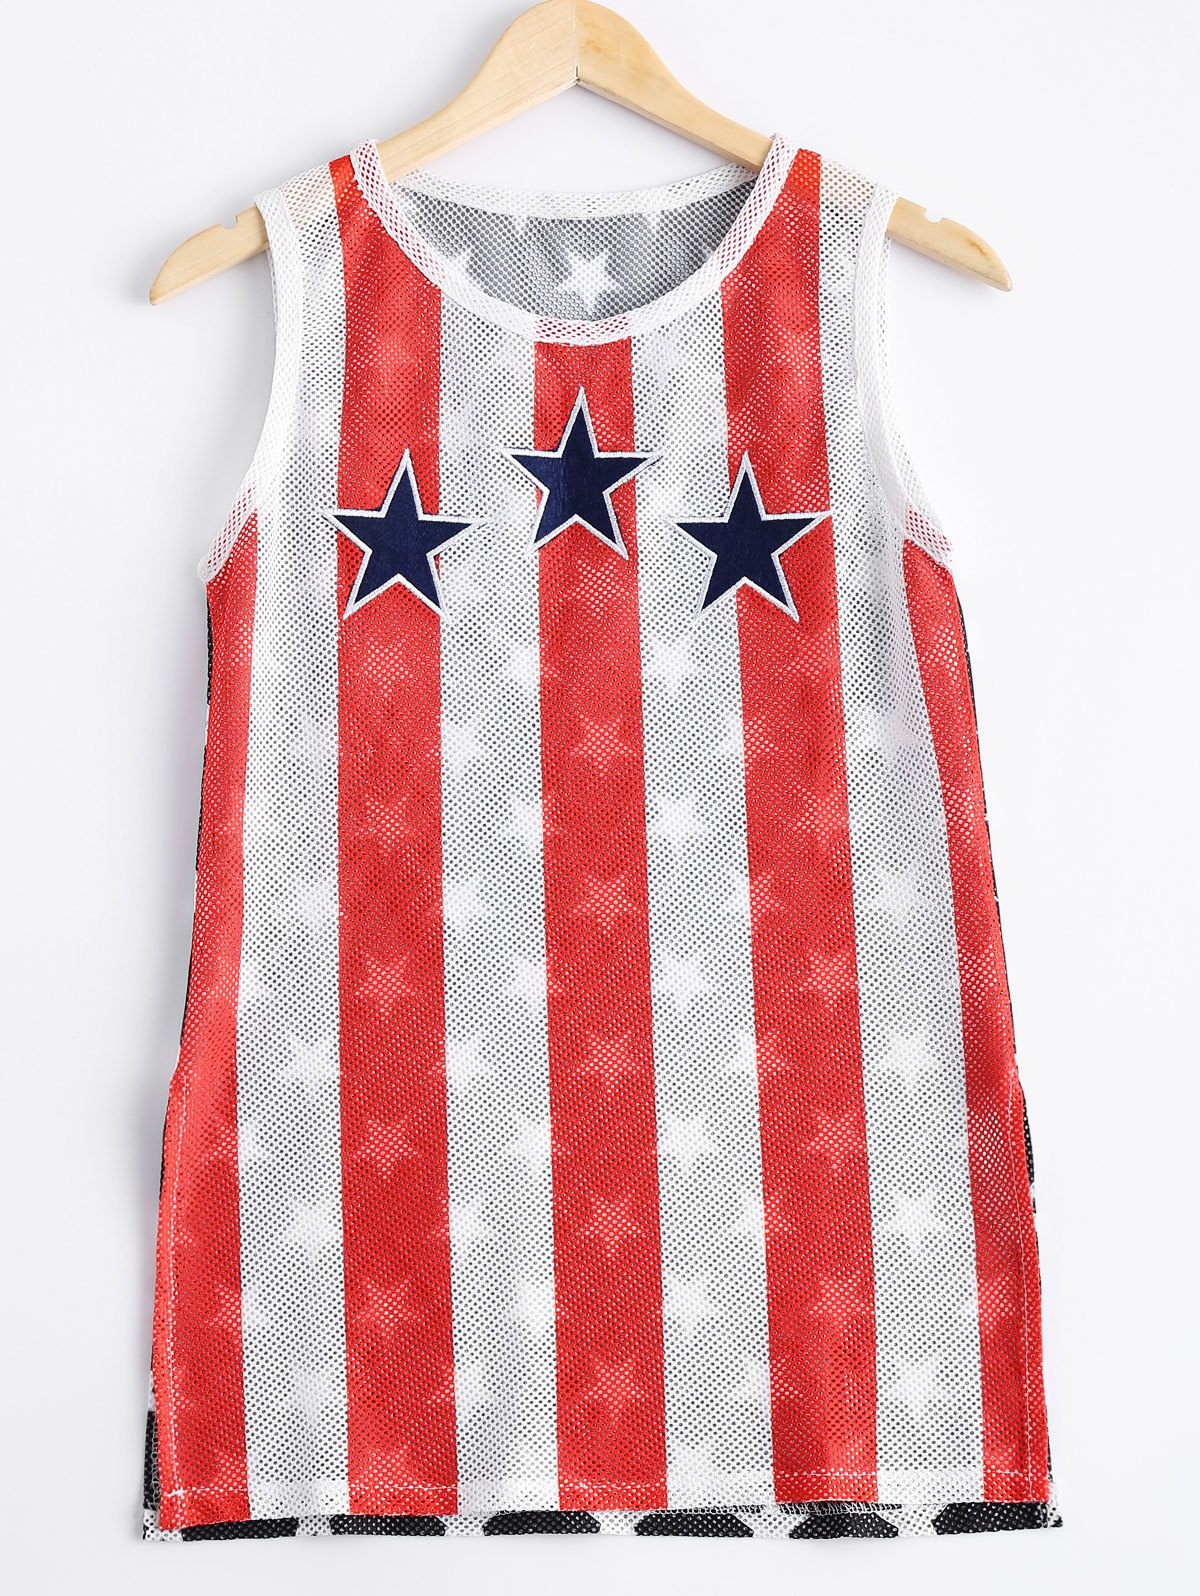 Fashionable Woman's Round Collar Elasticated Net Star Stripe Printing Tank Top